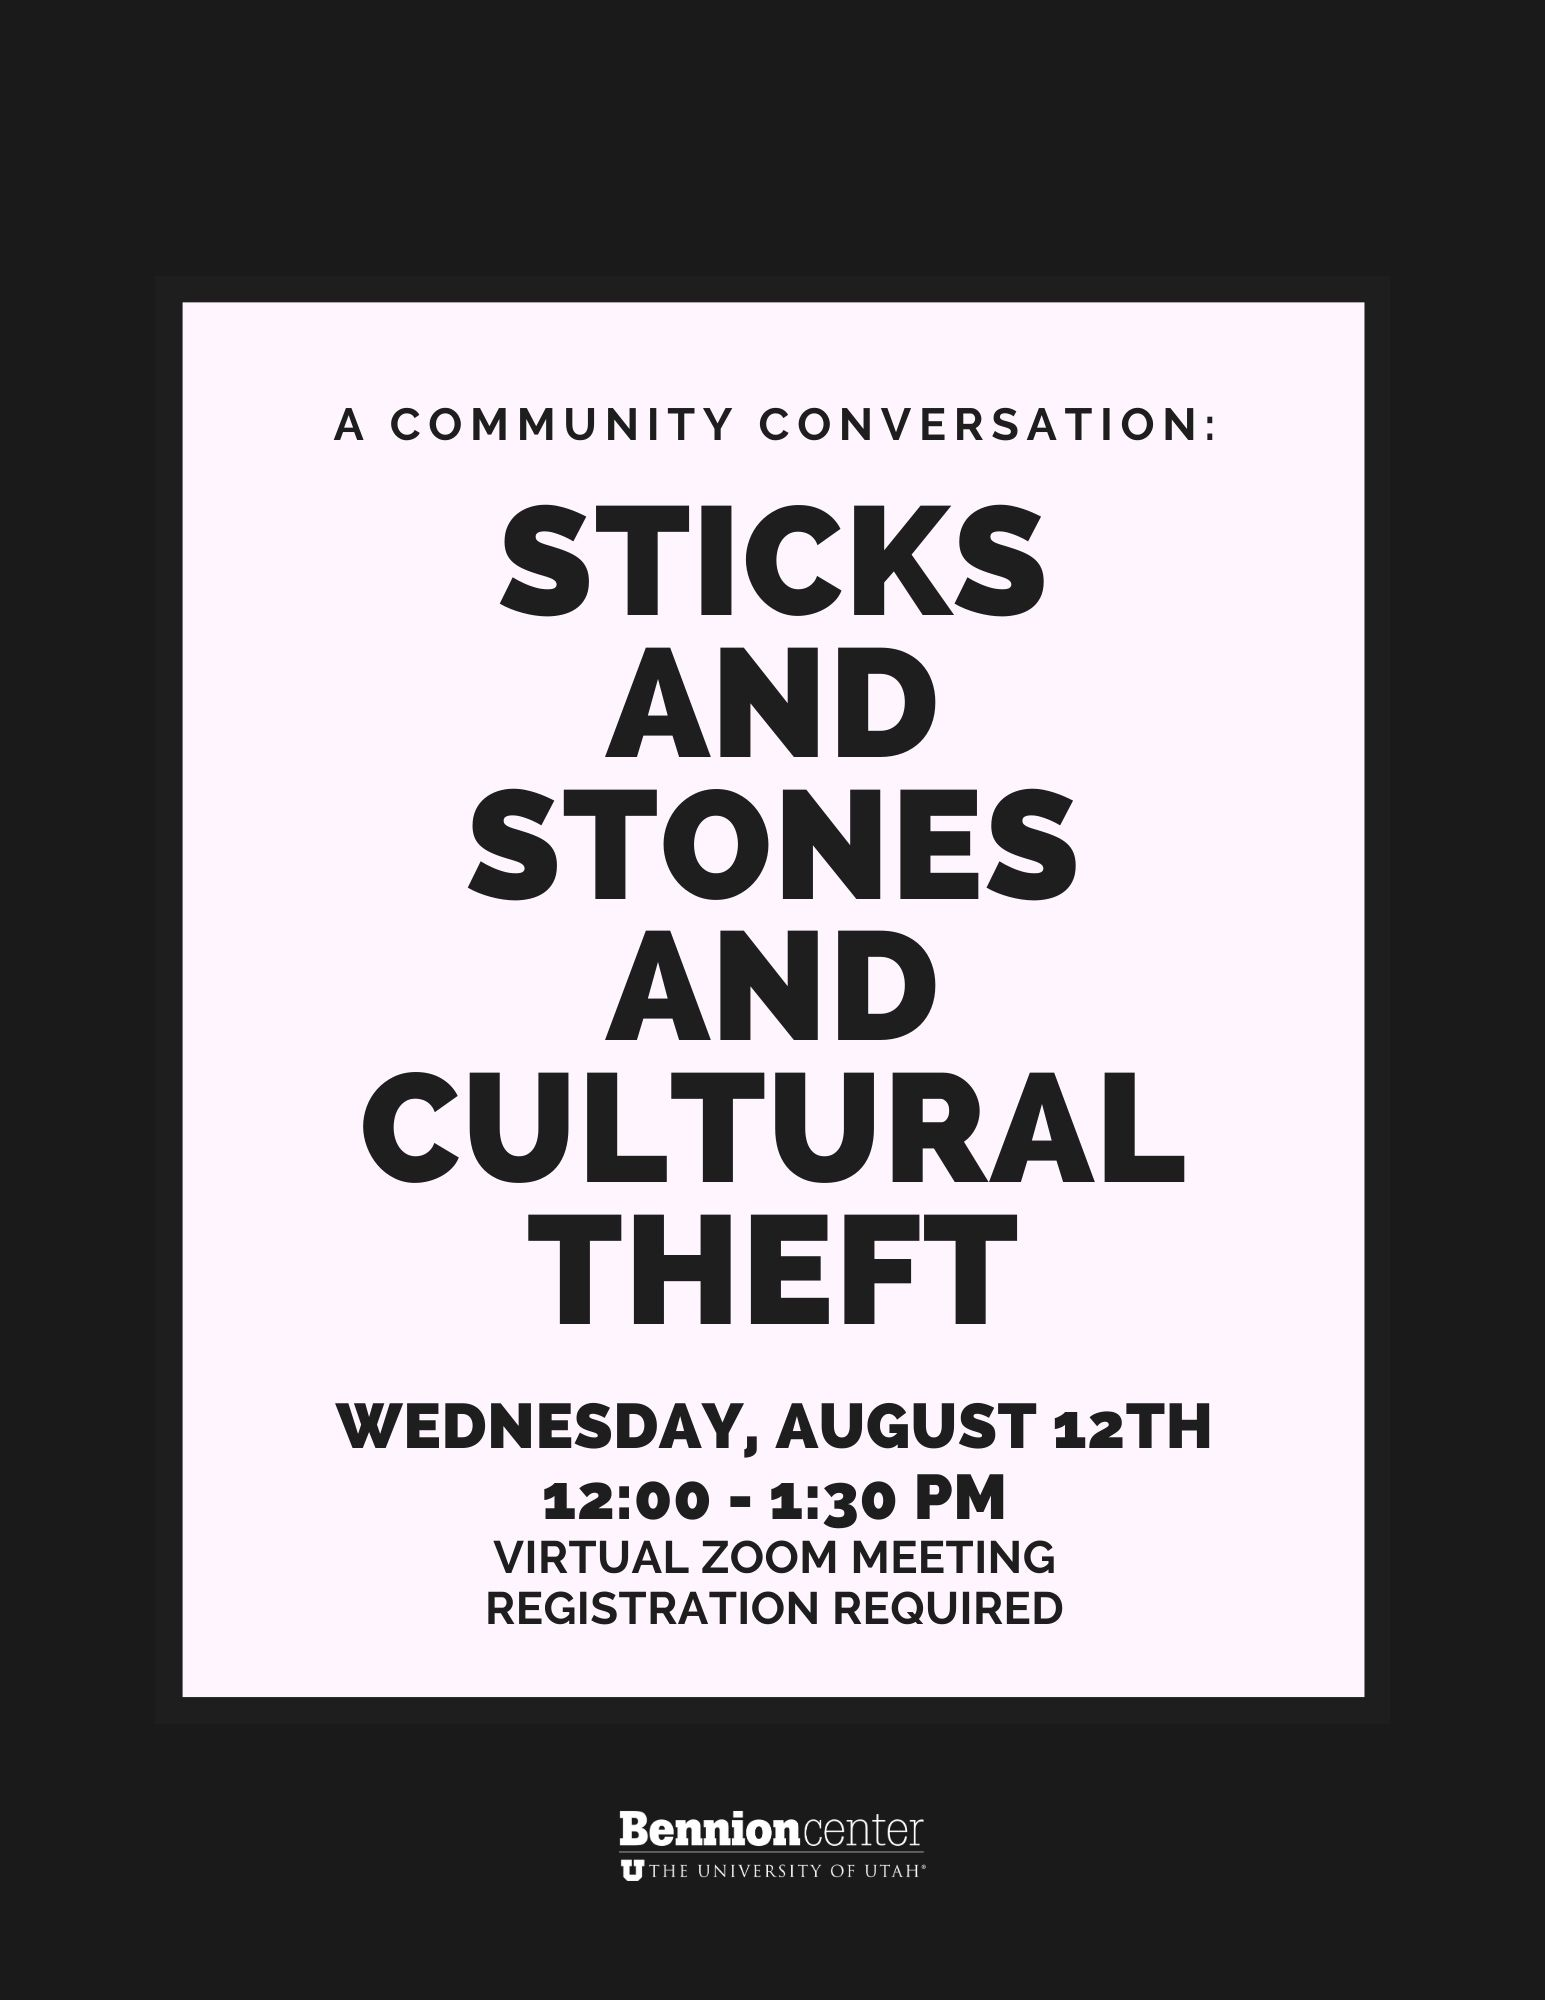 Sticks and Stones and Cultural Theft; Wednesday, August 12th; 12:00-1:30 PM; Virtual Zoom Meeting; Registration Required